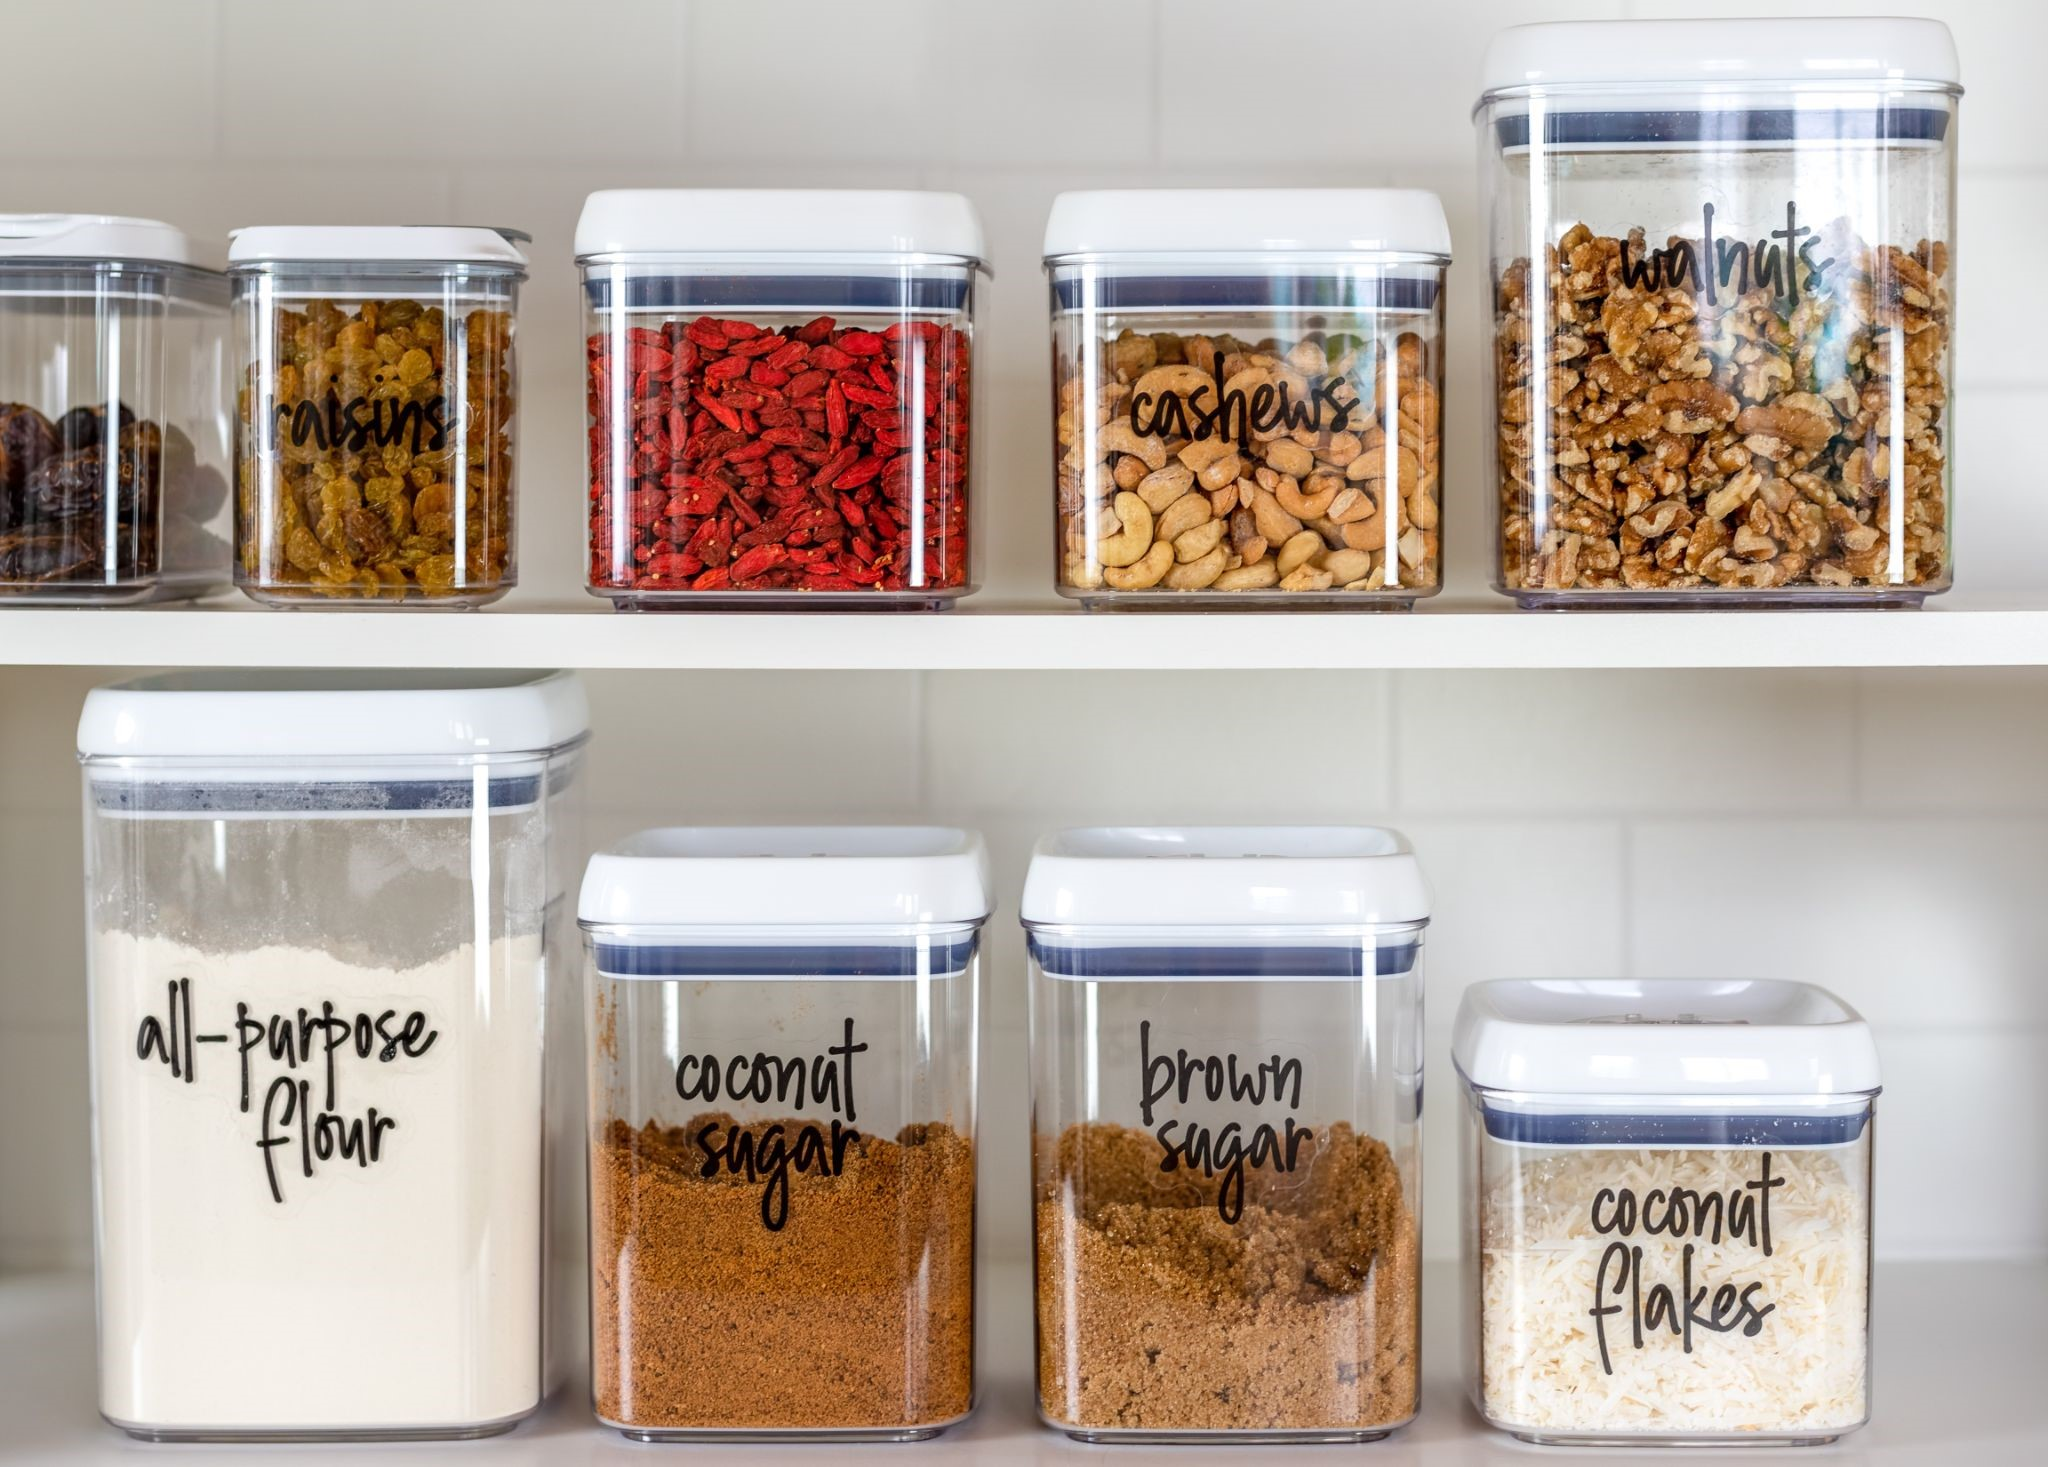 a of well-labeled and organized pantry items